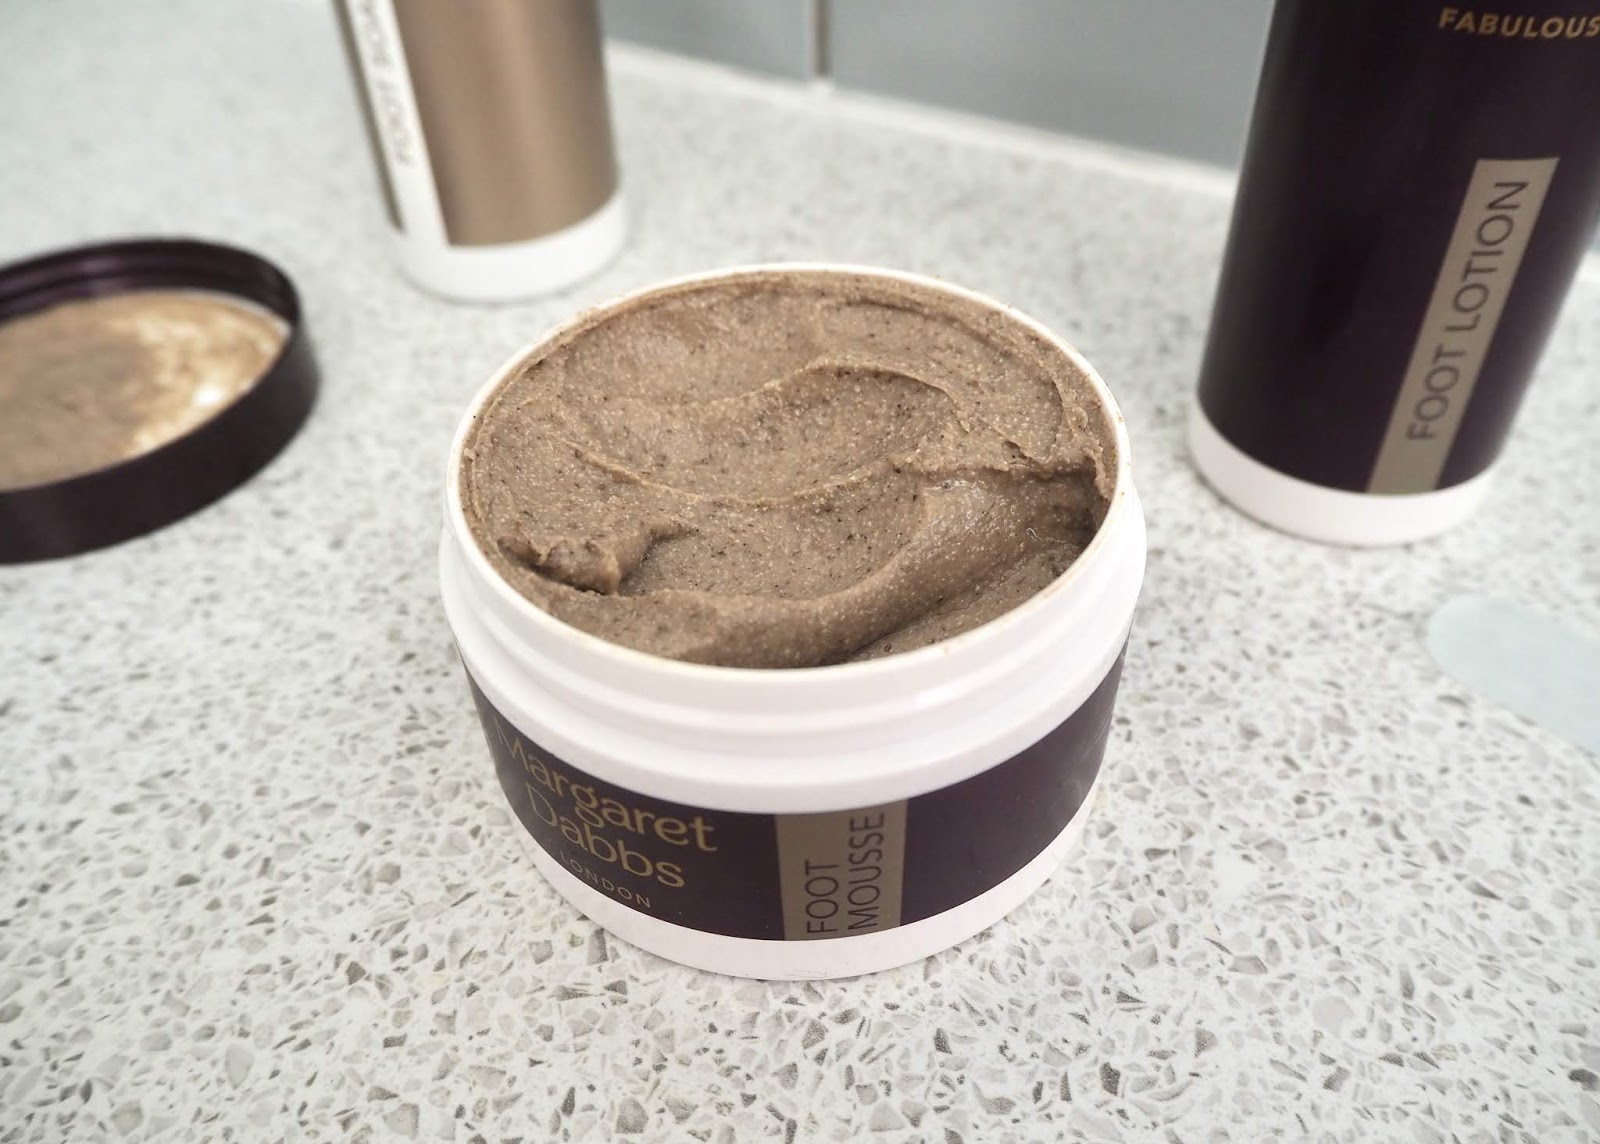 Margaret-Dabbs-London-Exfoliating-Foot-Mousse-review